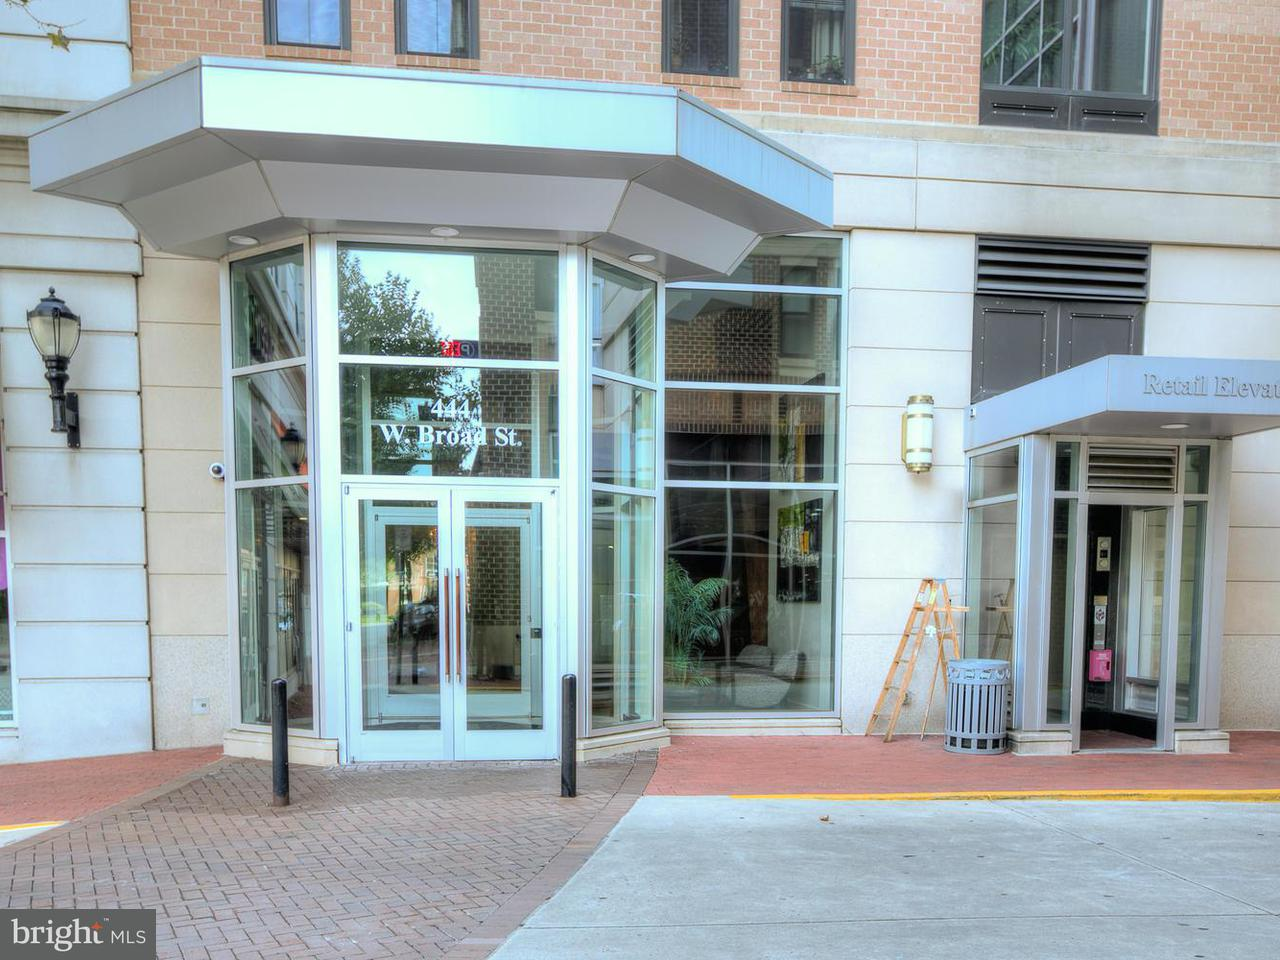 Condominium for Sale at 444 West Broad St #213 444 West Broad St #213 Falls Church, Virginia 22046 United States